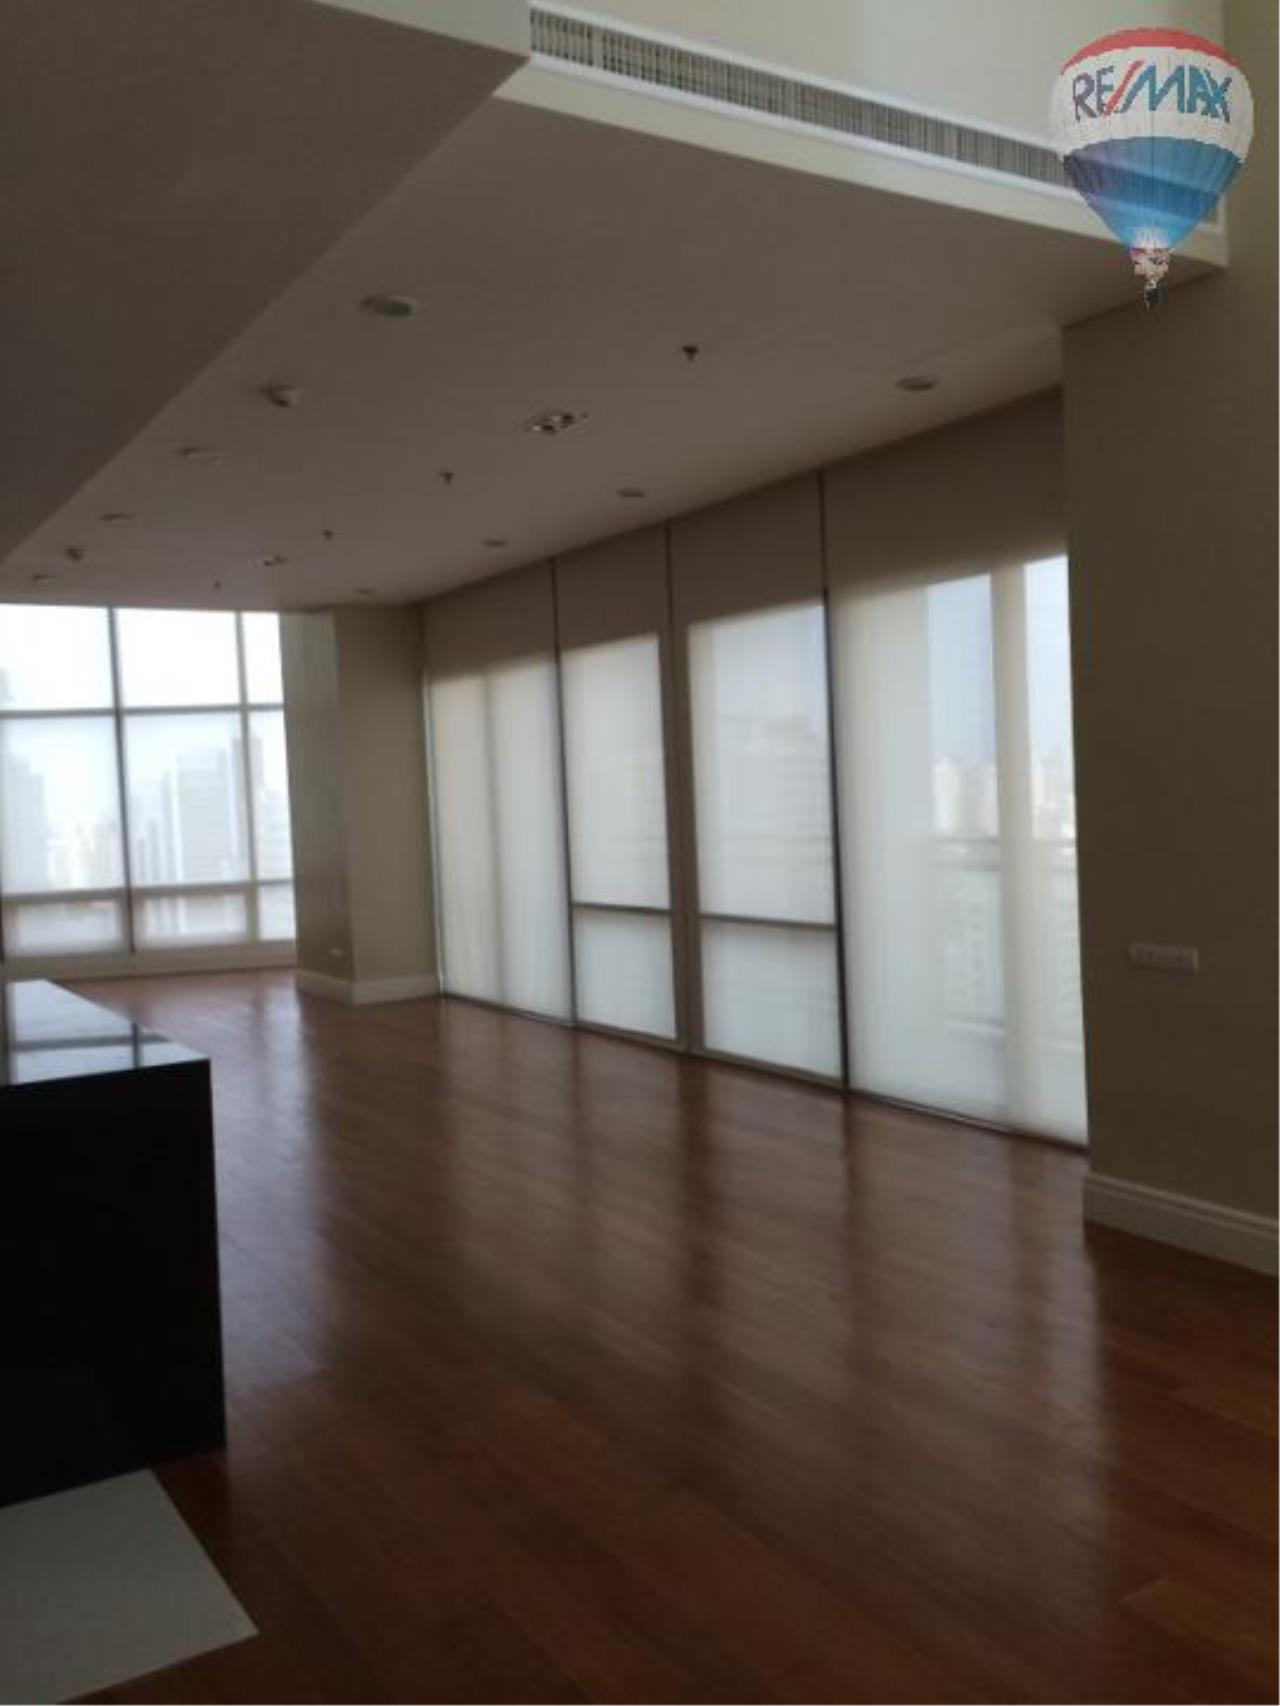 RE/MAX Properties Agency's 6 Bedroom 365 sq.m. for Rent at Bright Sukhumvit 24 19